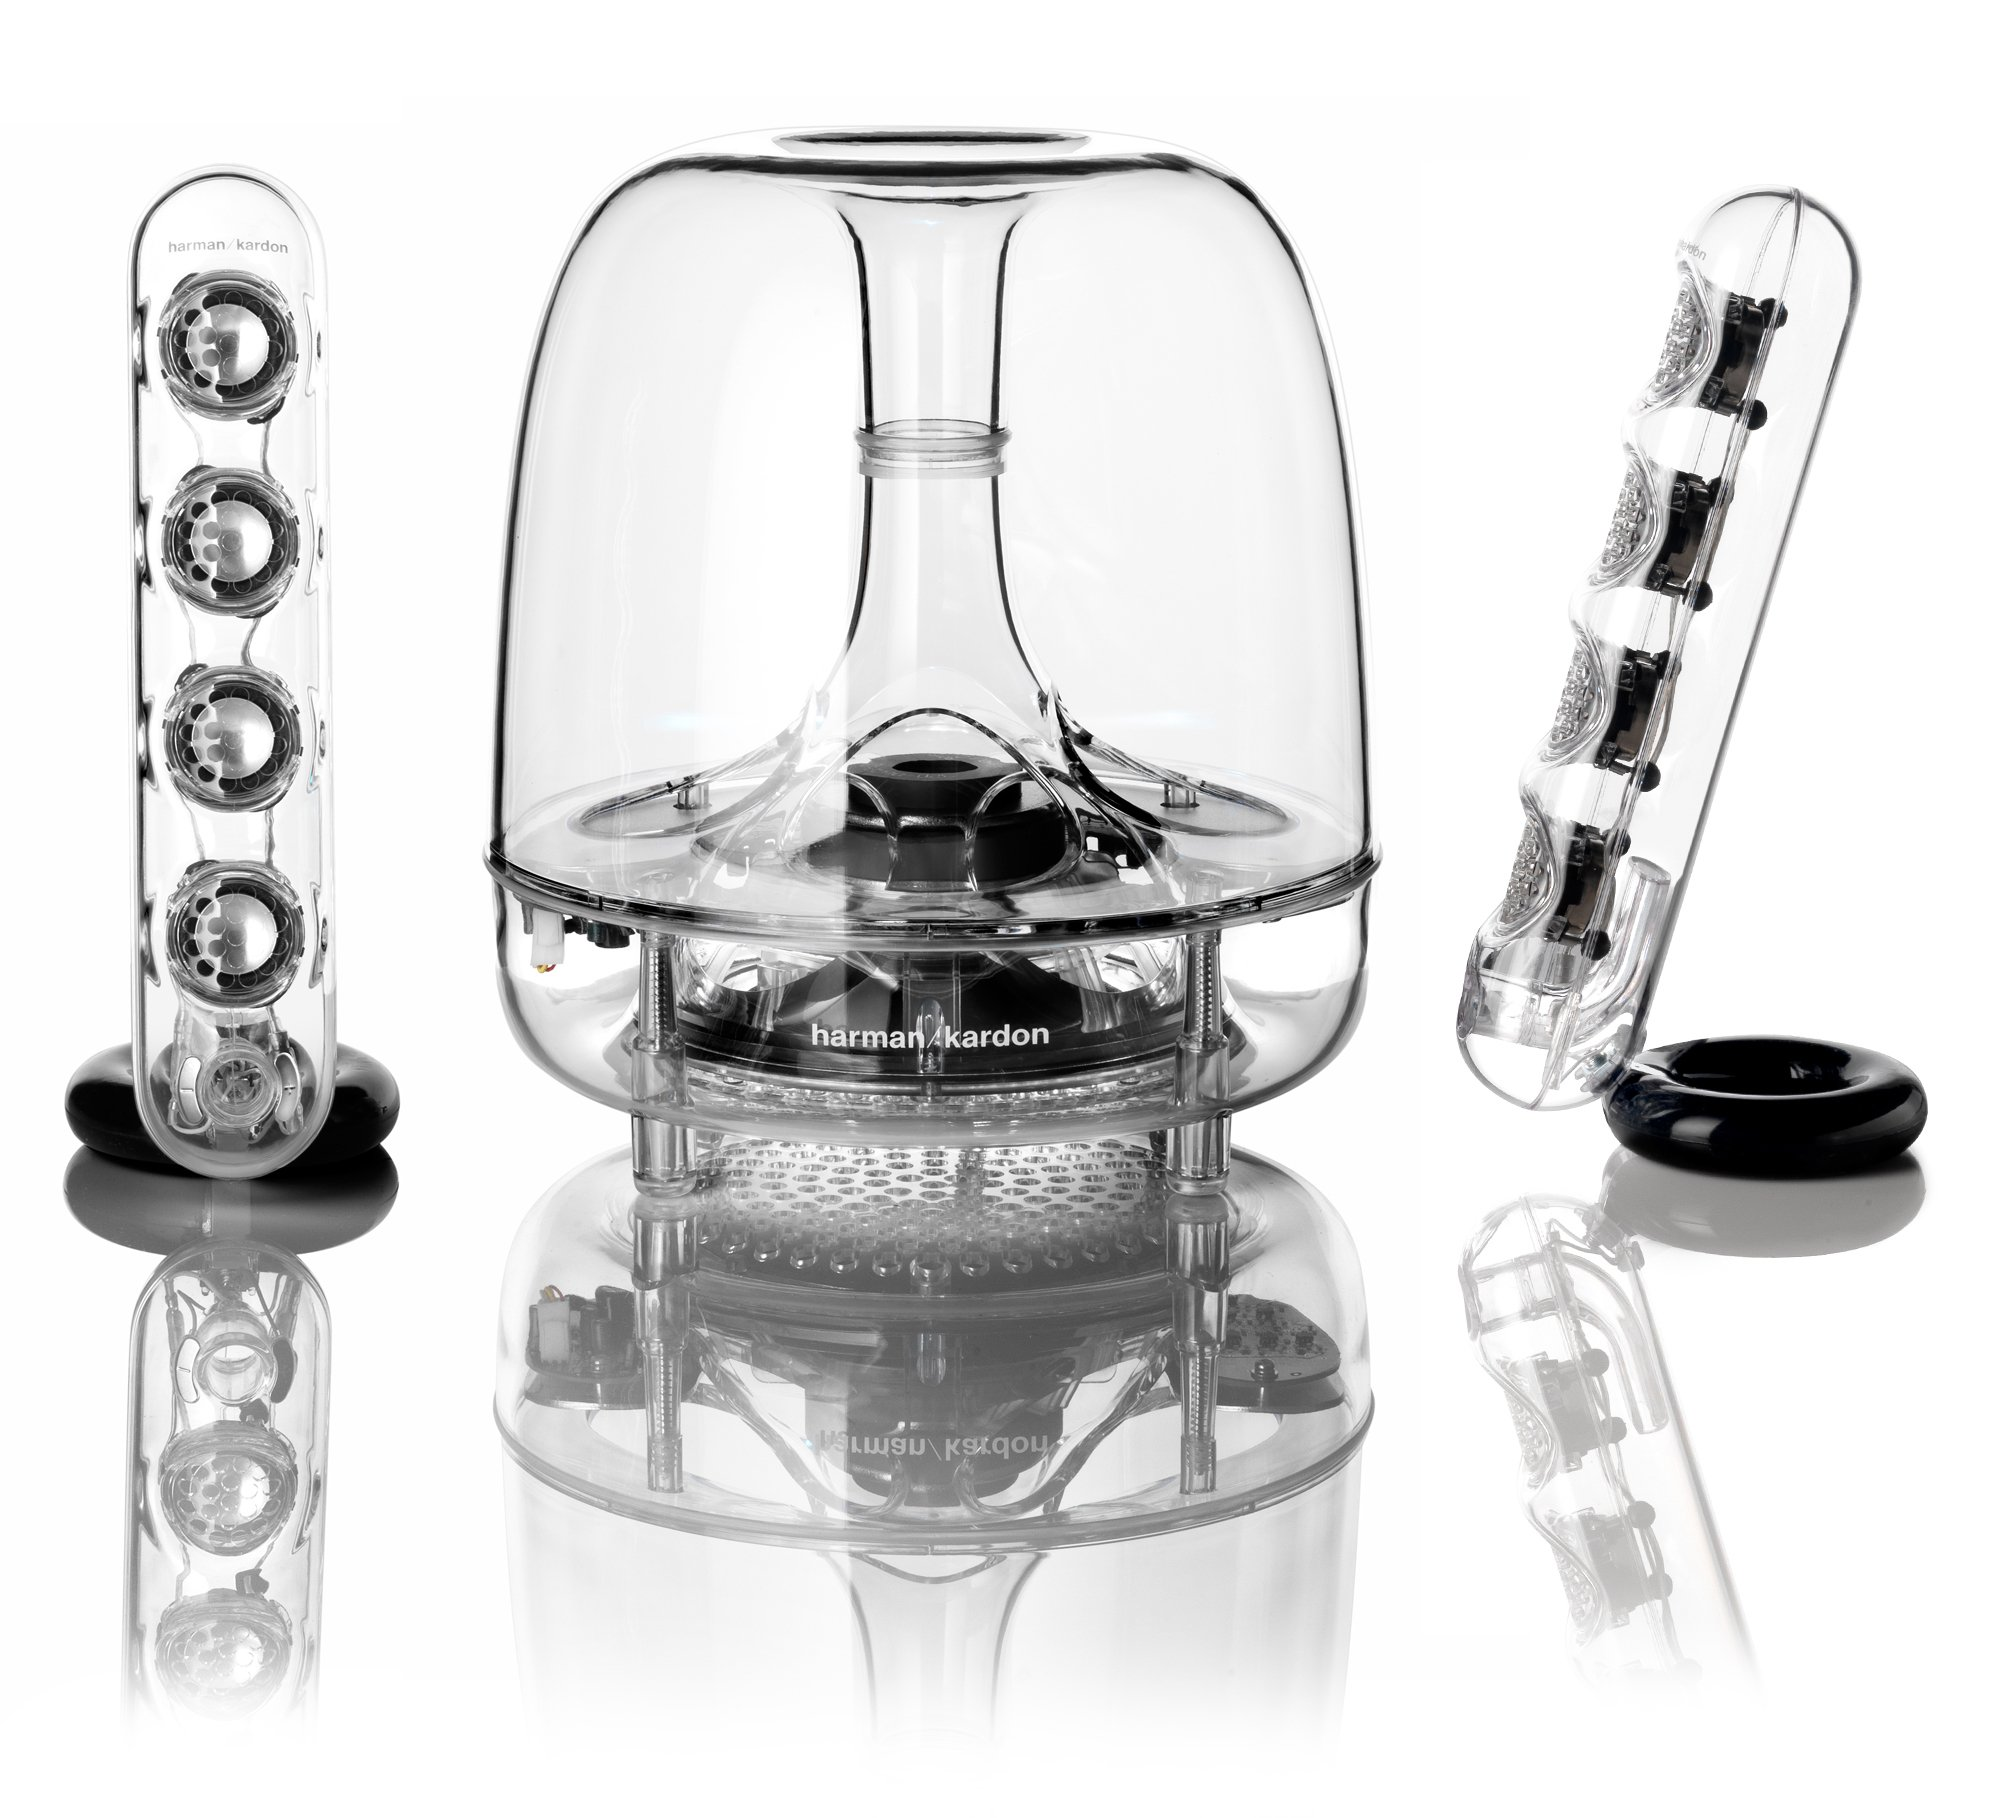 Harman Kardon Soundsticks III 2.1 Channel Multimedia Speaker System with Subwoofer